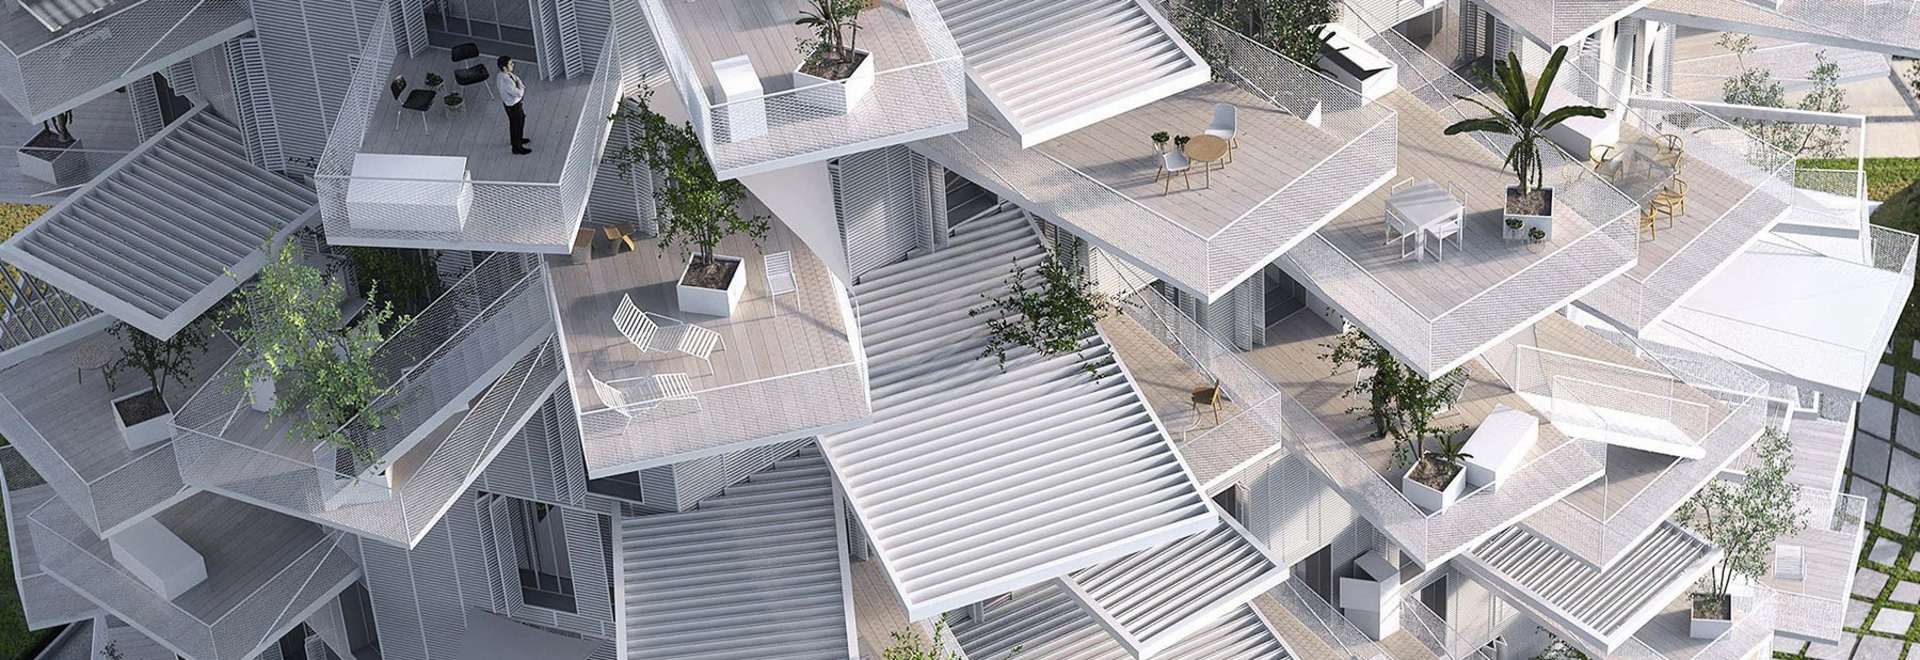 between nature and architecture: sou fujimoto discusses his approach to design